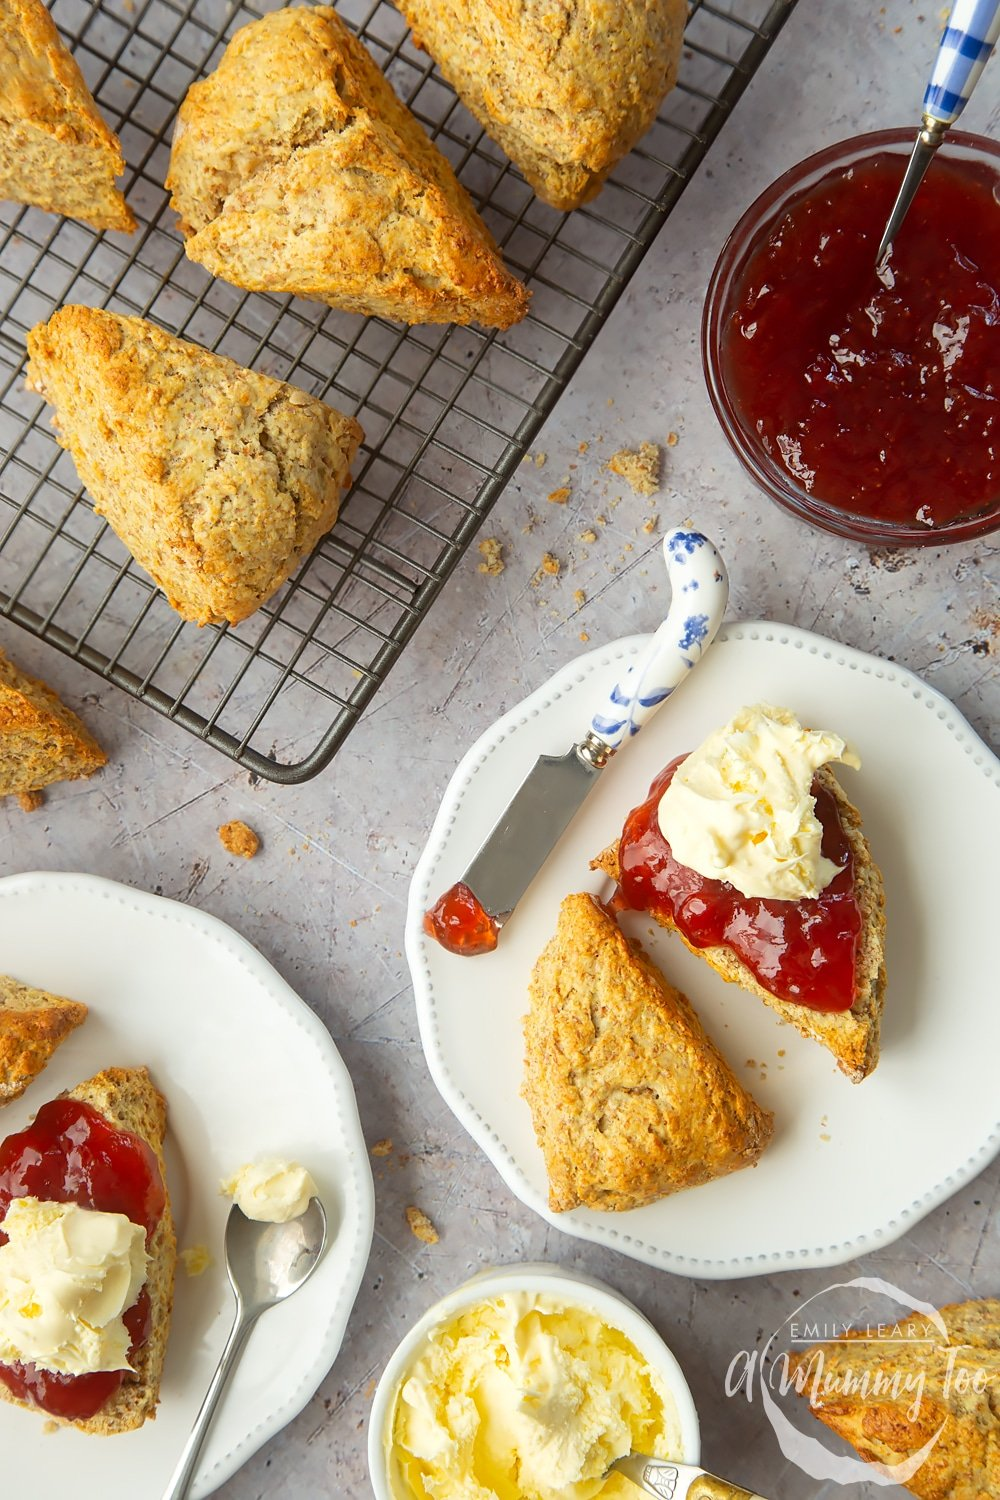 50/50 scones served with jam and clotted cream